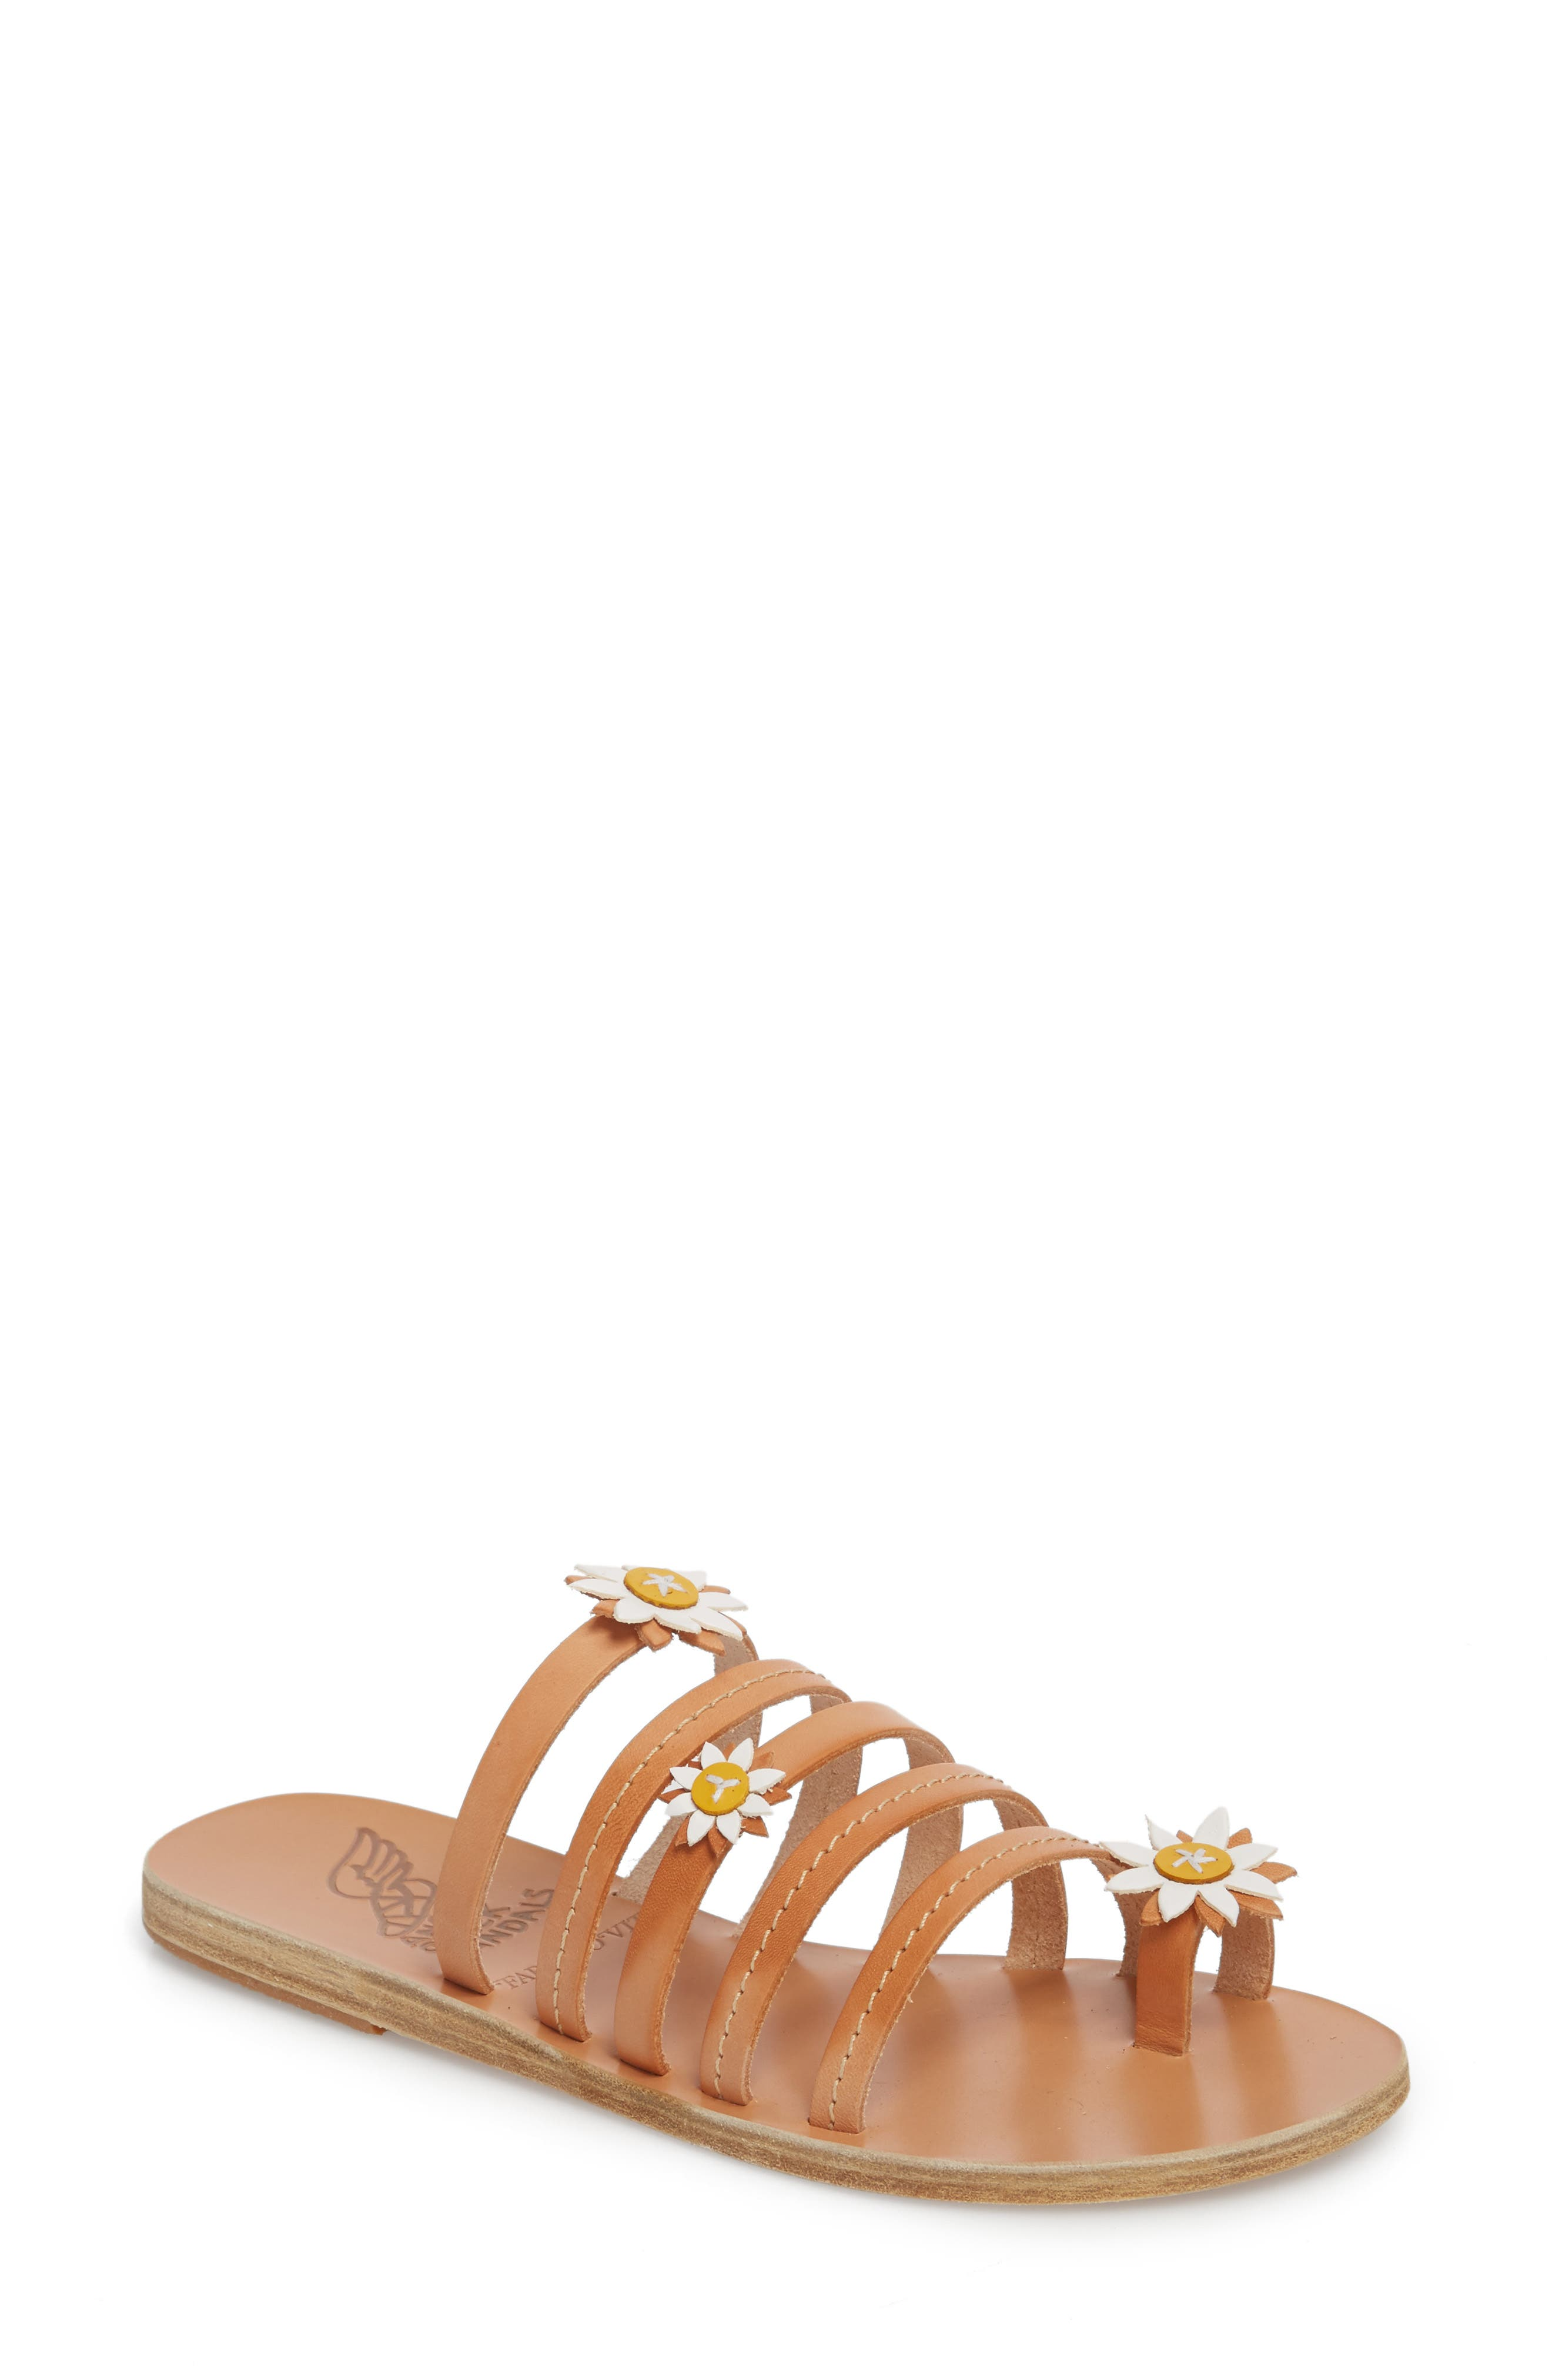 Victoria Sandal,                             Main thumbnail 1, color,                             Natural